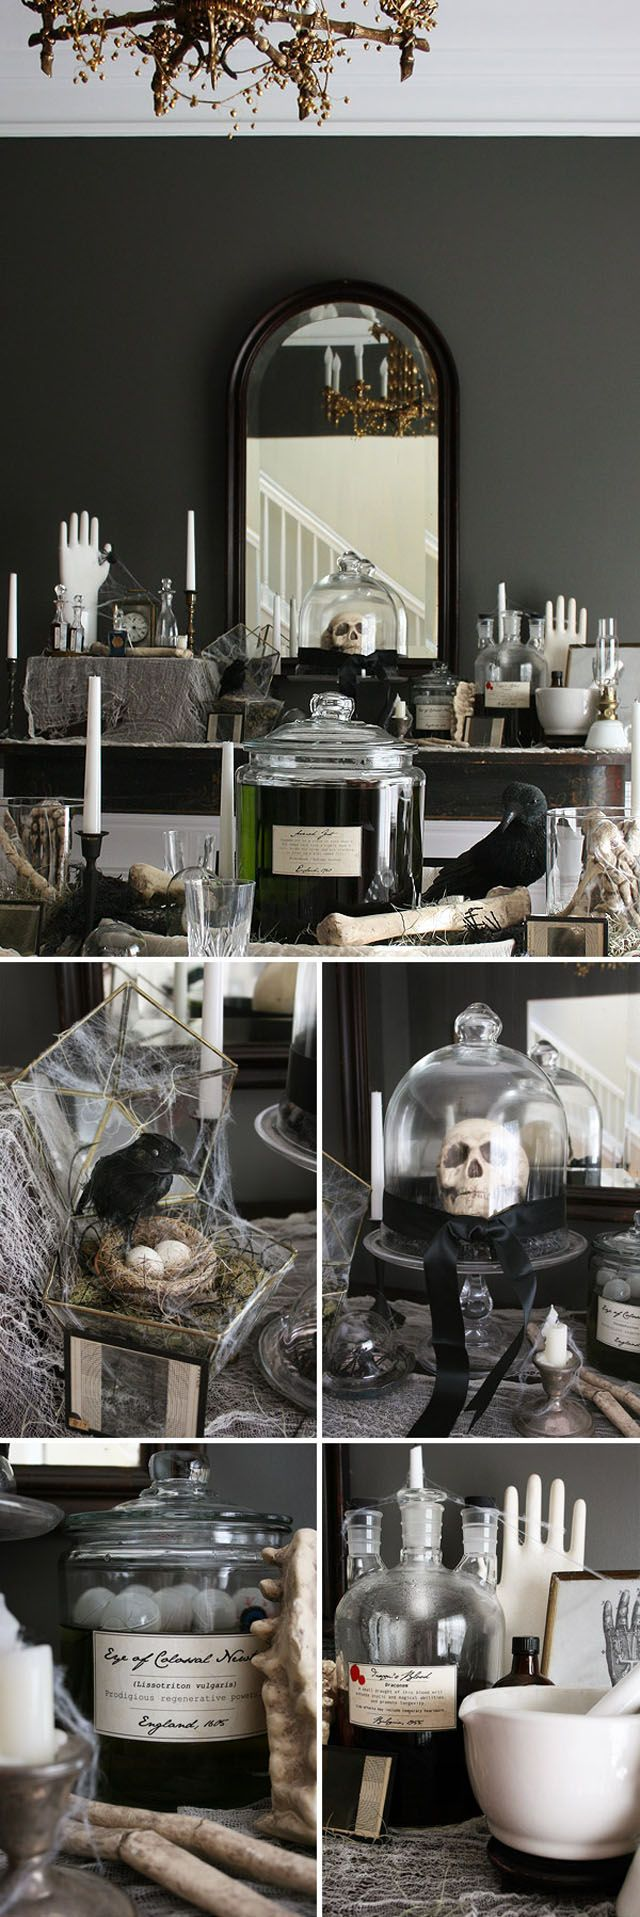 I'm always drawn to black and aged white Halloween decor. Classy and sinister feel to it!